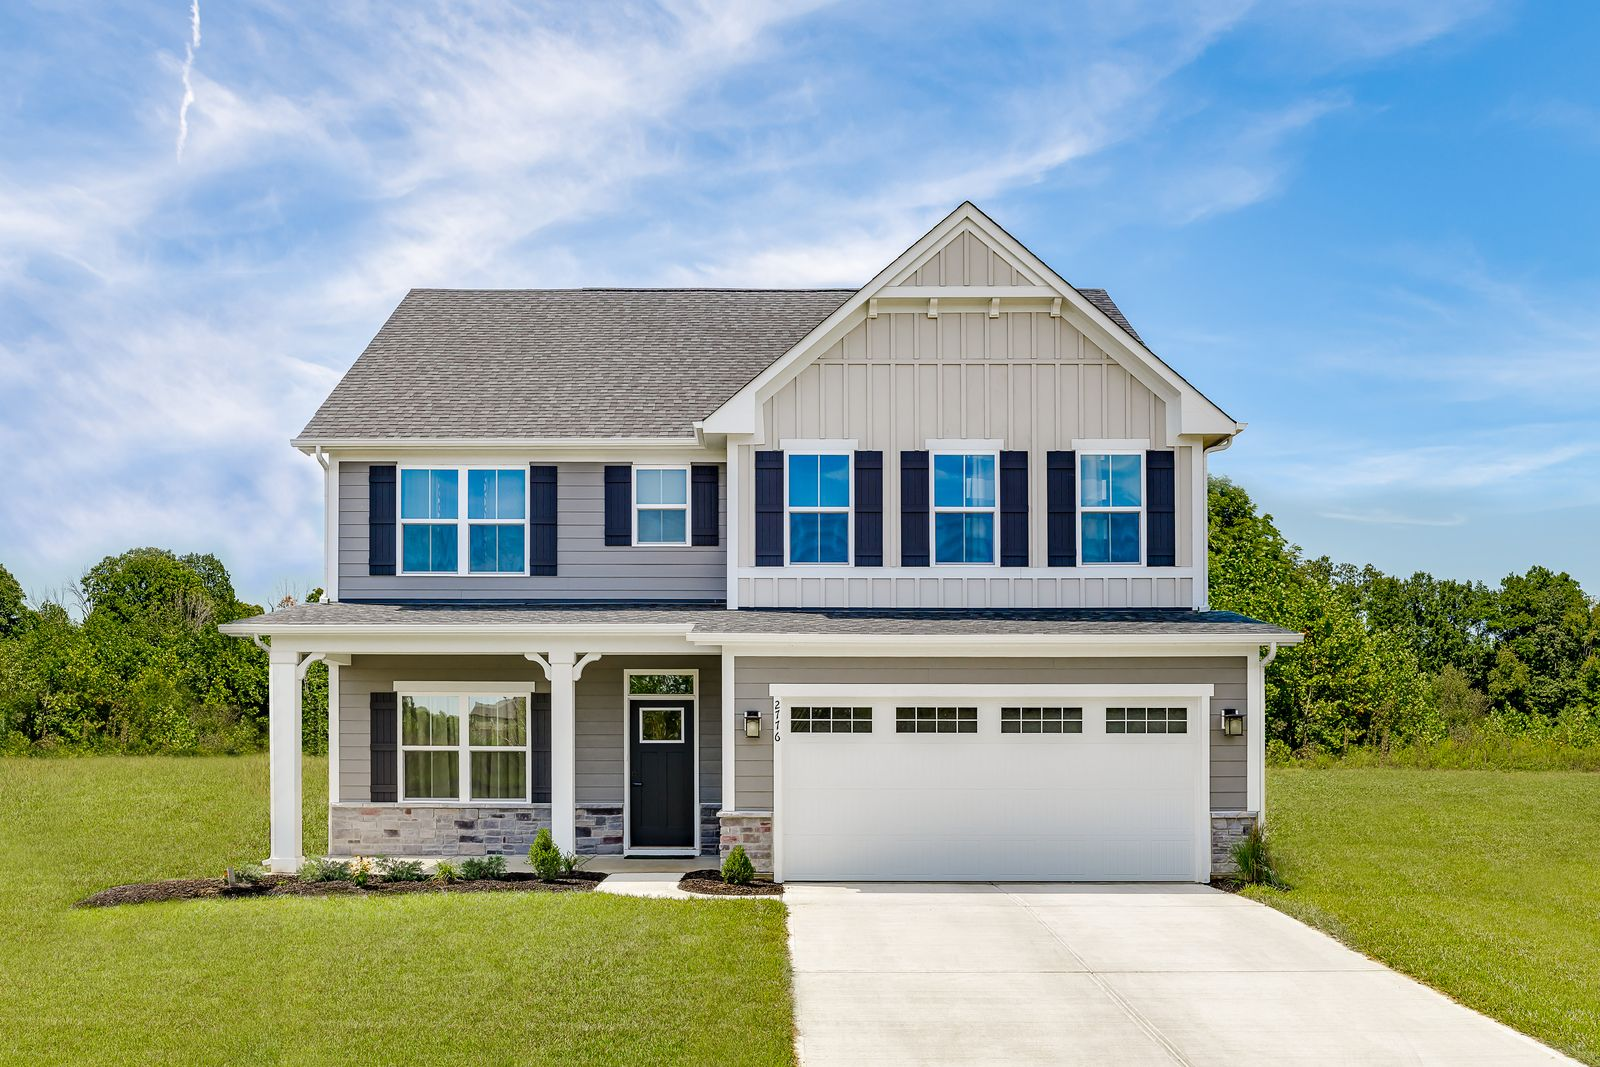 Cedar Hills - Resort-Style Amenities & Convenient Location:Charming community w/ resort-style amenities all for an amazing value! Walkable to Stewarts Creek schools & only 3 miles to shopping, dining, & I-24.Schedule your virtual or in-person visit today!